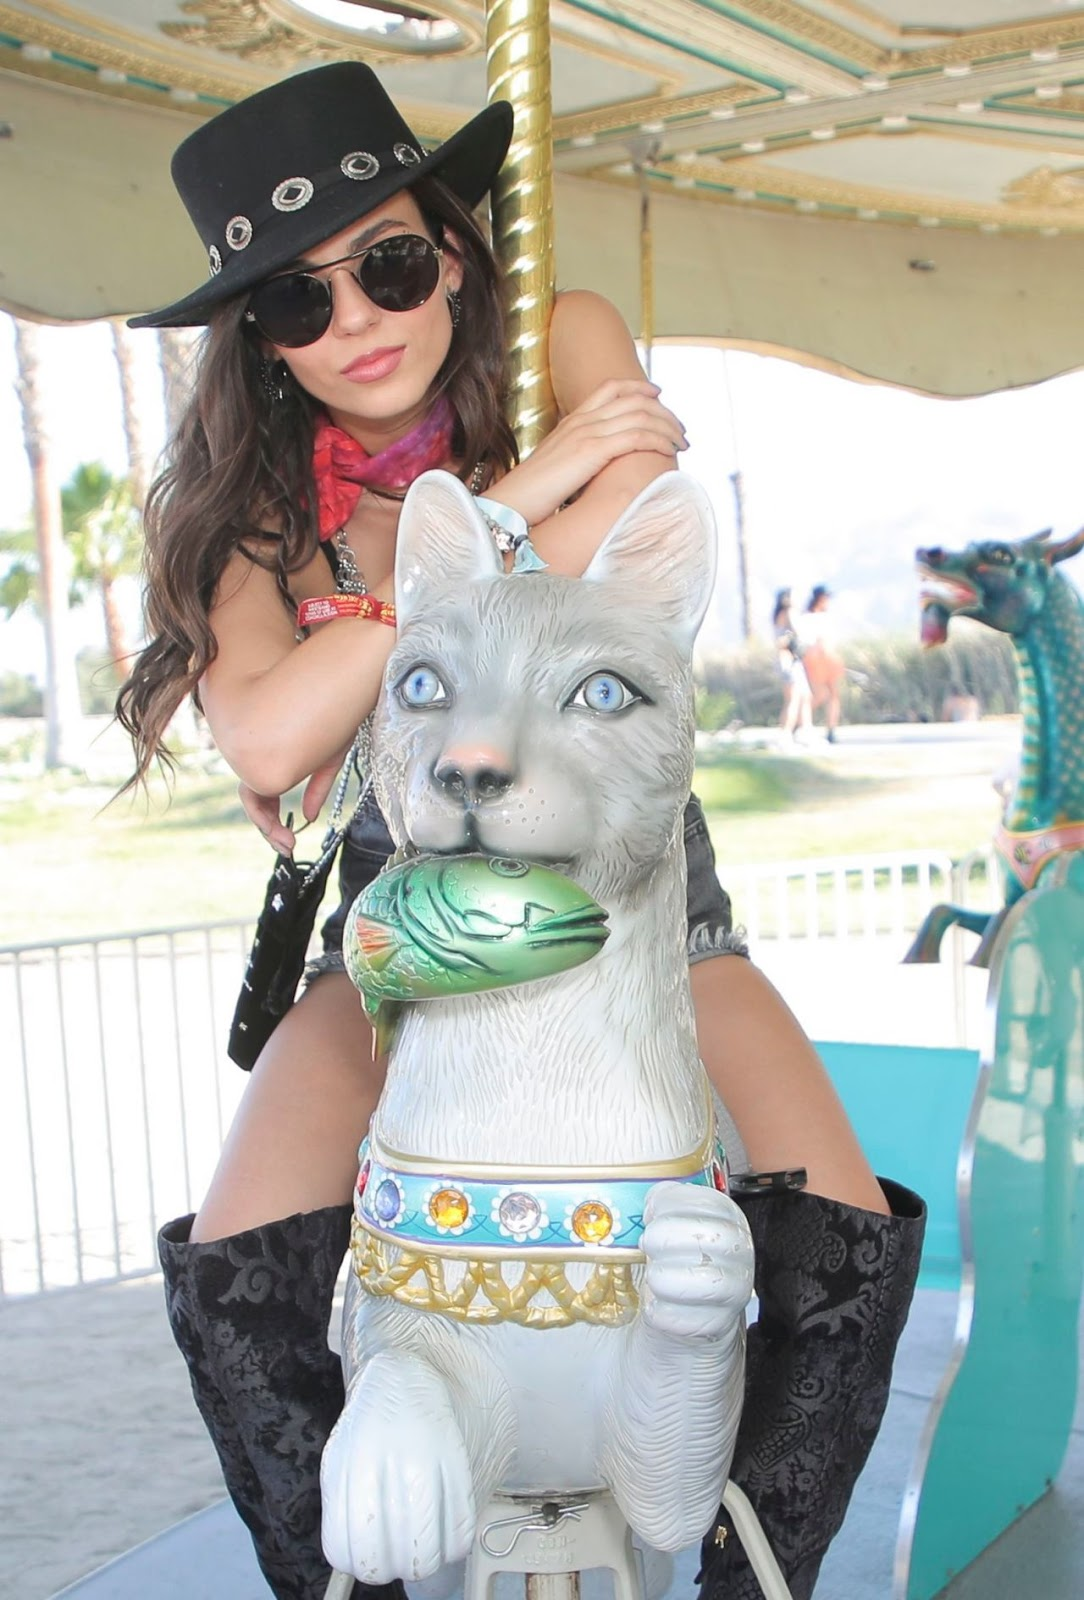 Victoria Justice – Revolve Party at Coachella in Indio